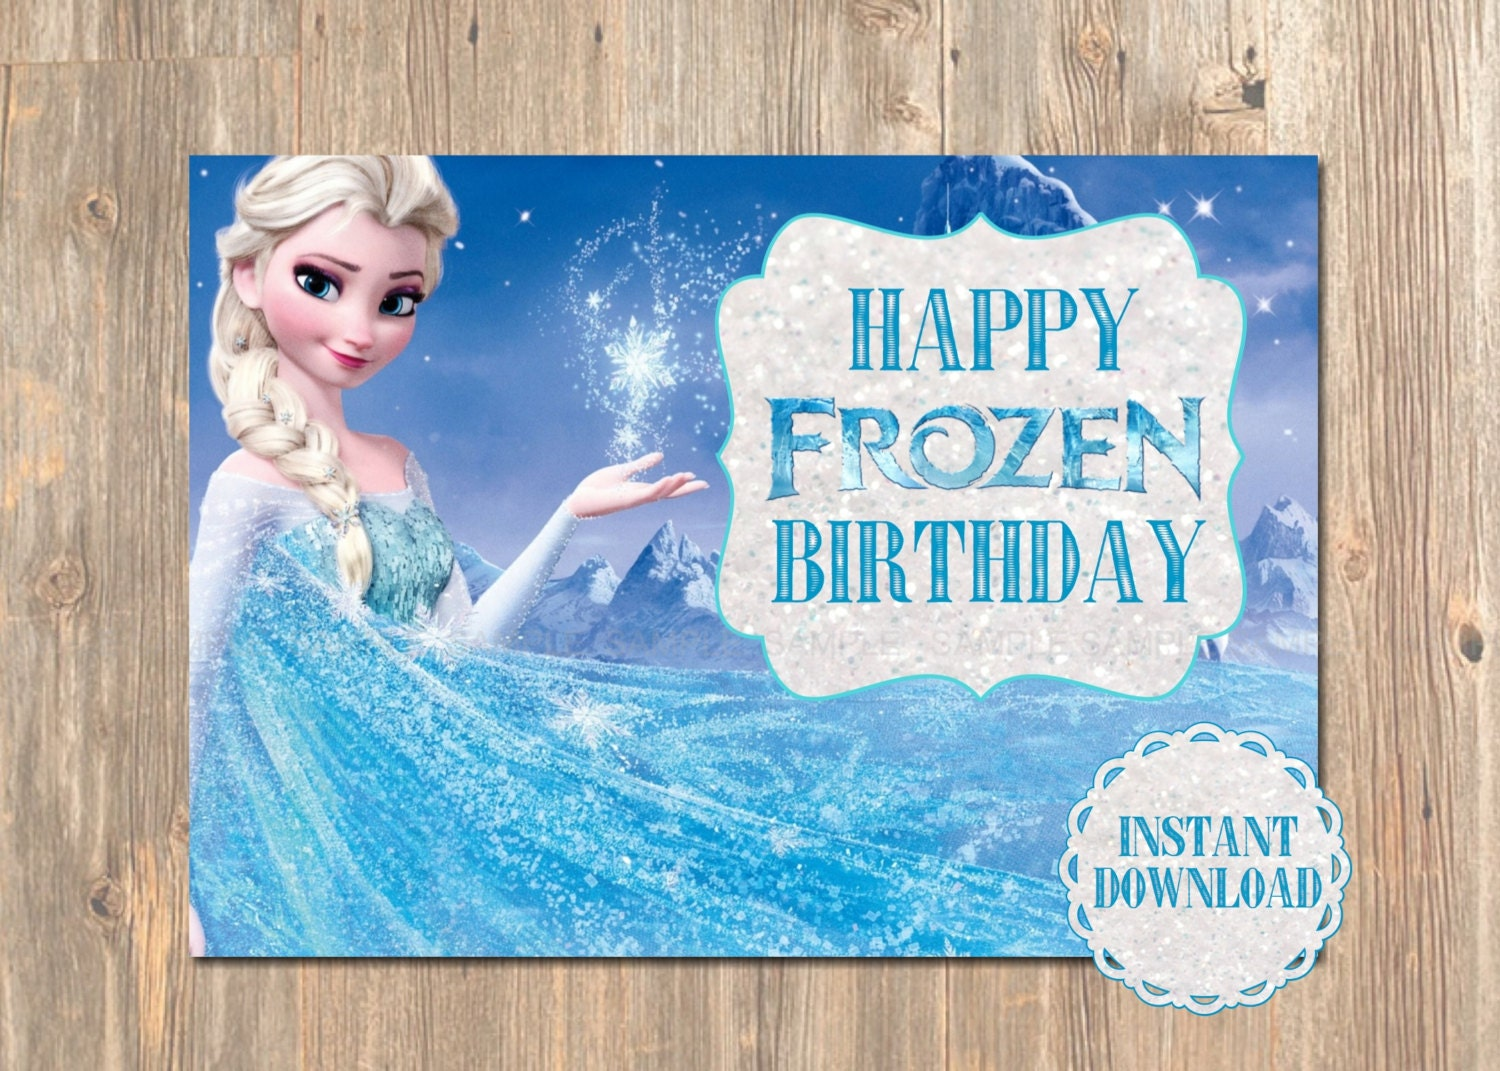 Frozen happy birthday quotes quotesgram for Geburtstagsbilder 18